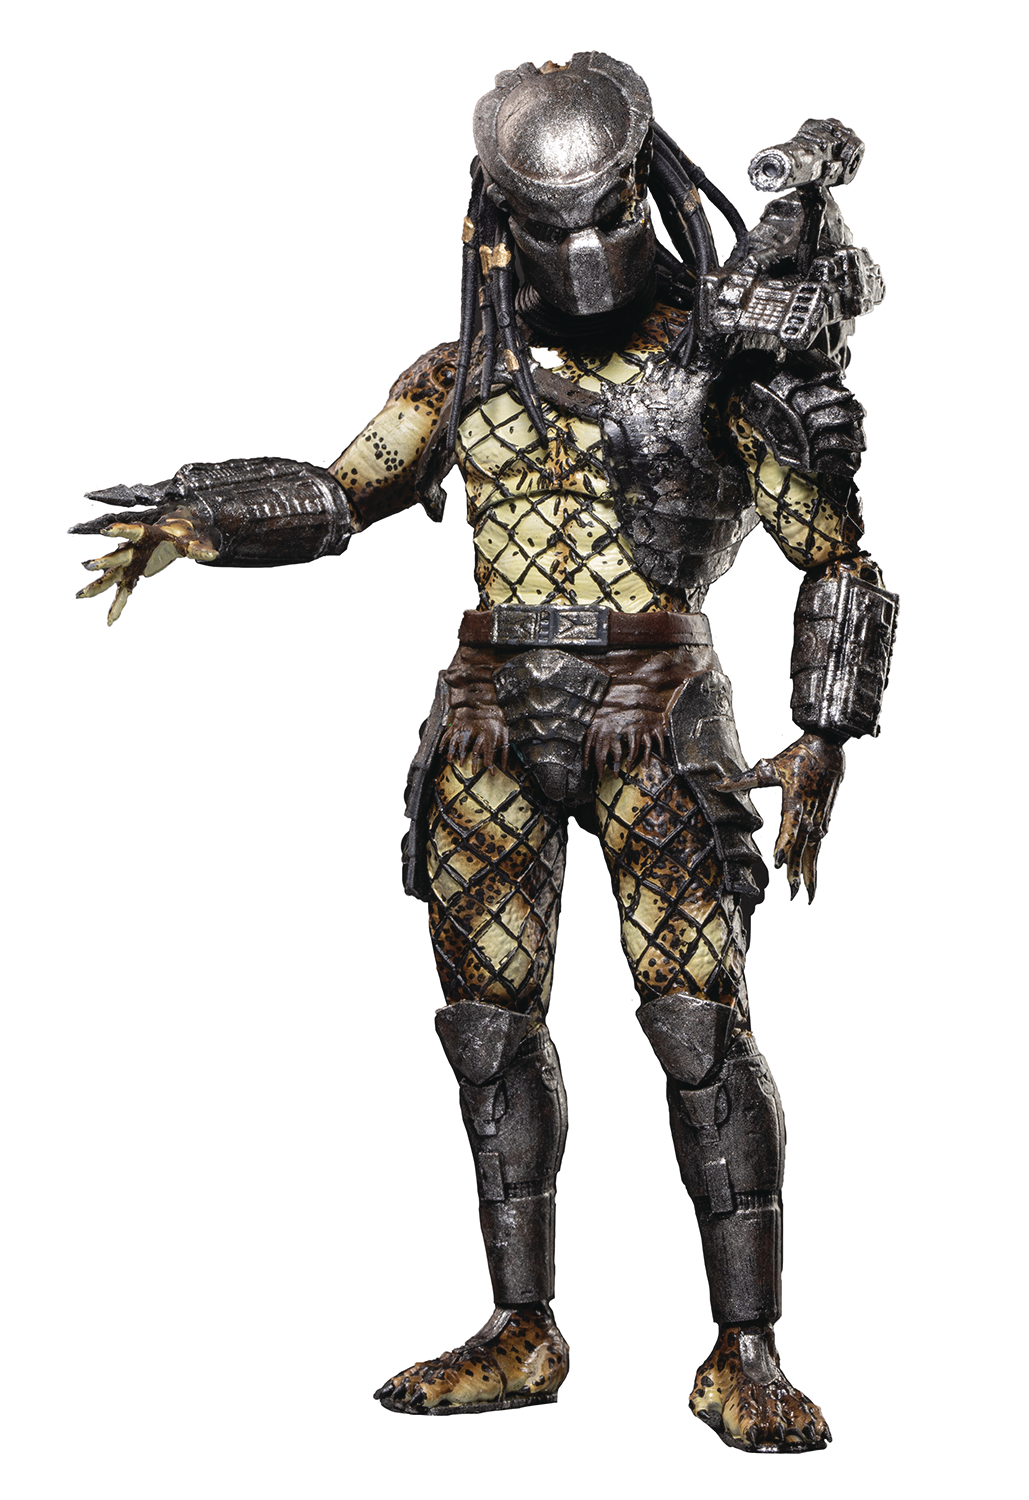 PREDATORS ARMORED CRUCIFIED PREDATOR PX 1/18 SCALE FIG